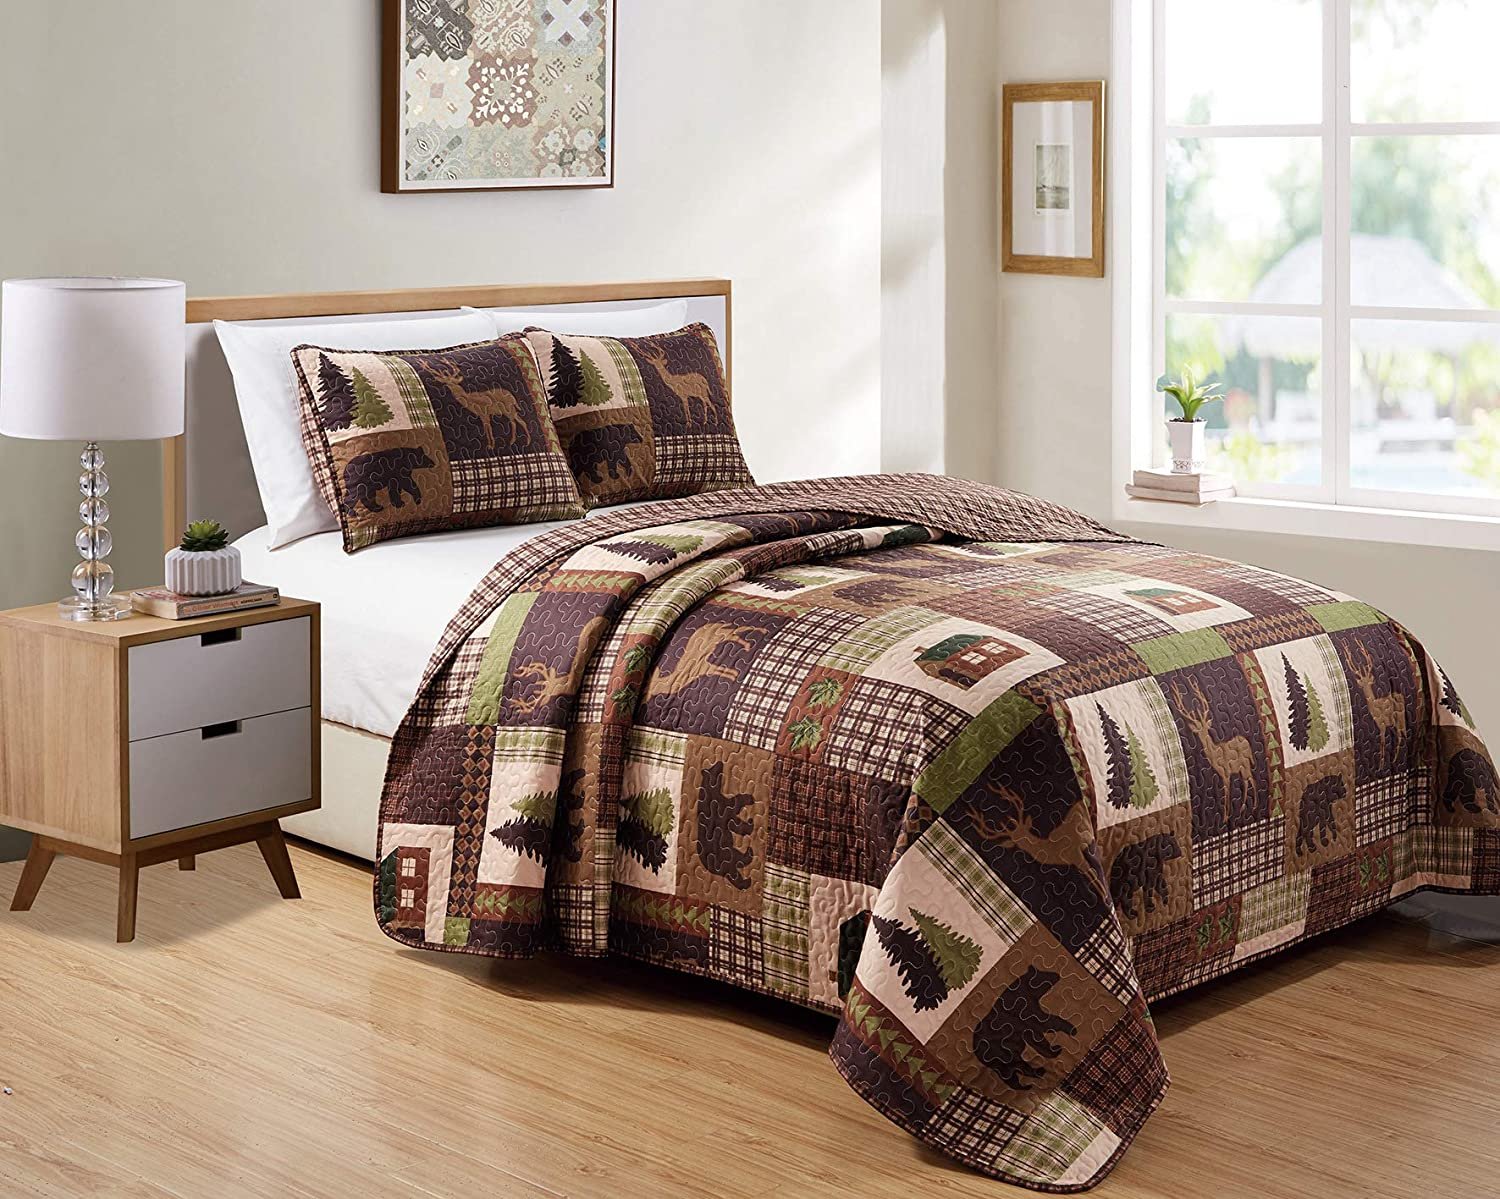 Rustic Western Lodge Quilted Plaid Reversible Bedspread Set with Wildlife Imagery of Grizzly Bear Elk Buck and Pine Trees in Dark Brown - Alpine Trail (Full/Queen)